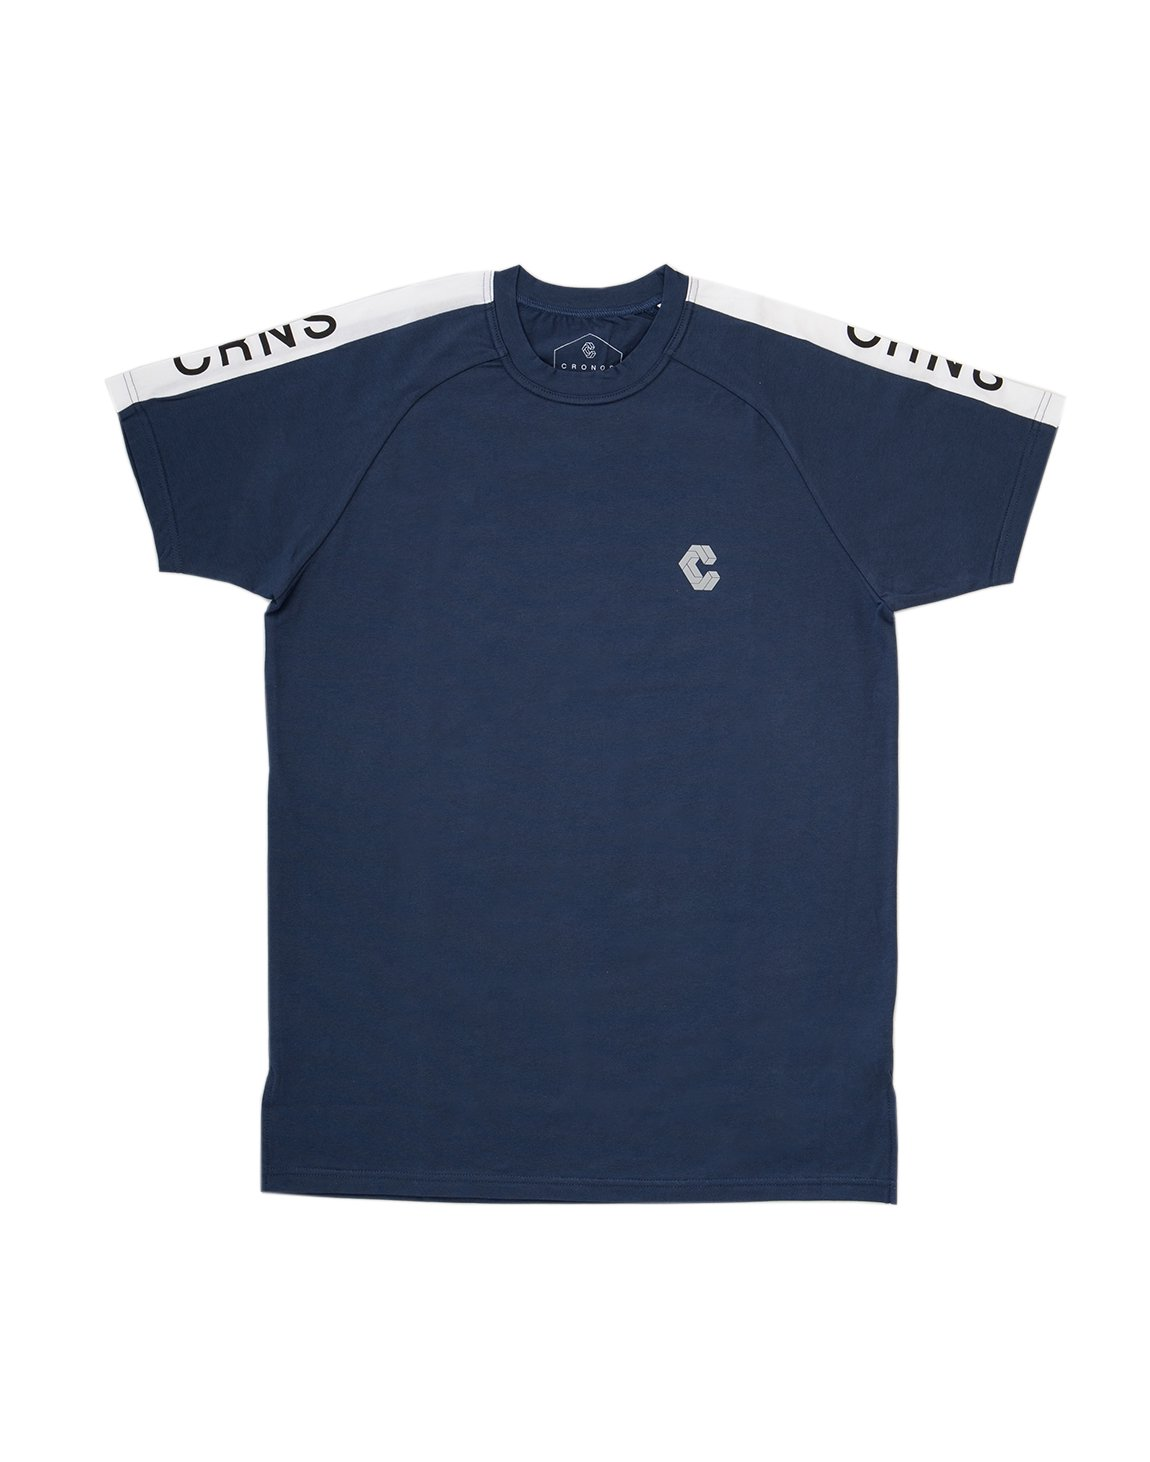 <img class='new_mark_img1' src='https://img.shop-pro.jp/img/new/icons55.gif' style='border:none;display:inline;margin:0px;padding:0px;width:auto;' />CRNS SHOULDER LOGO FIT T-SHIRTS 【NAVY】